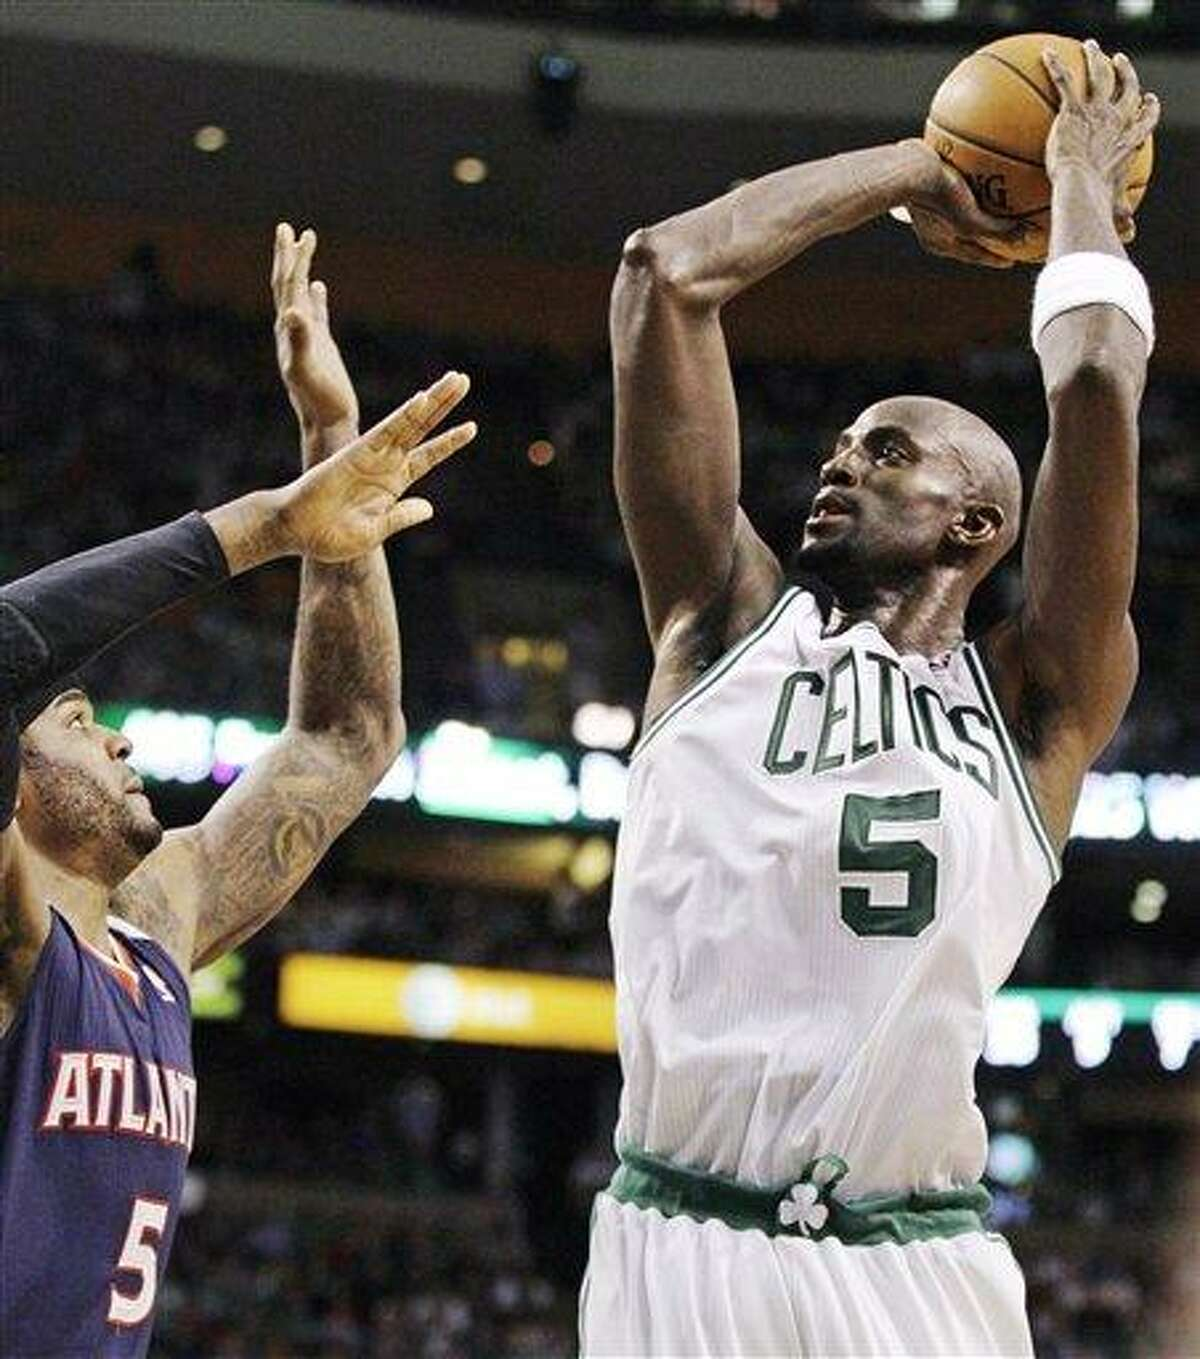 Boston Celtics power forward Kevin Garnett (5) shoots over Atlanta Hawks power forward Josh Smith (5) during the first half of Game 6 in a first-round NBA basketball playoff series in Boston, Thursday, May 10, 2012. The Celtics won 83-80 and won the series 4-2 to advance to the second round. (AP Photo/Charles Krupa)